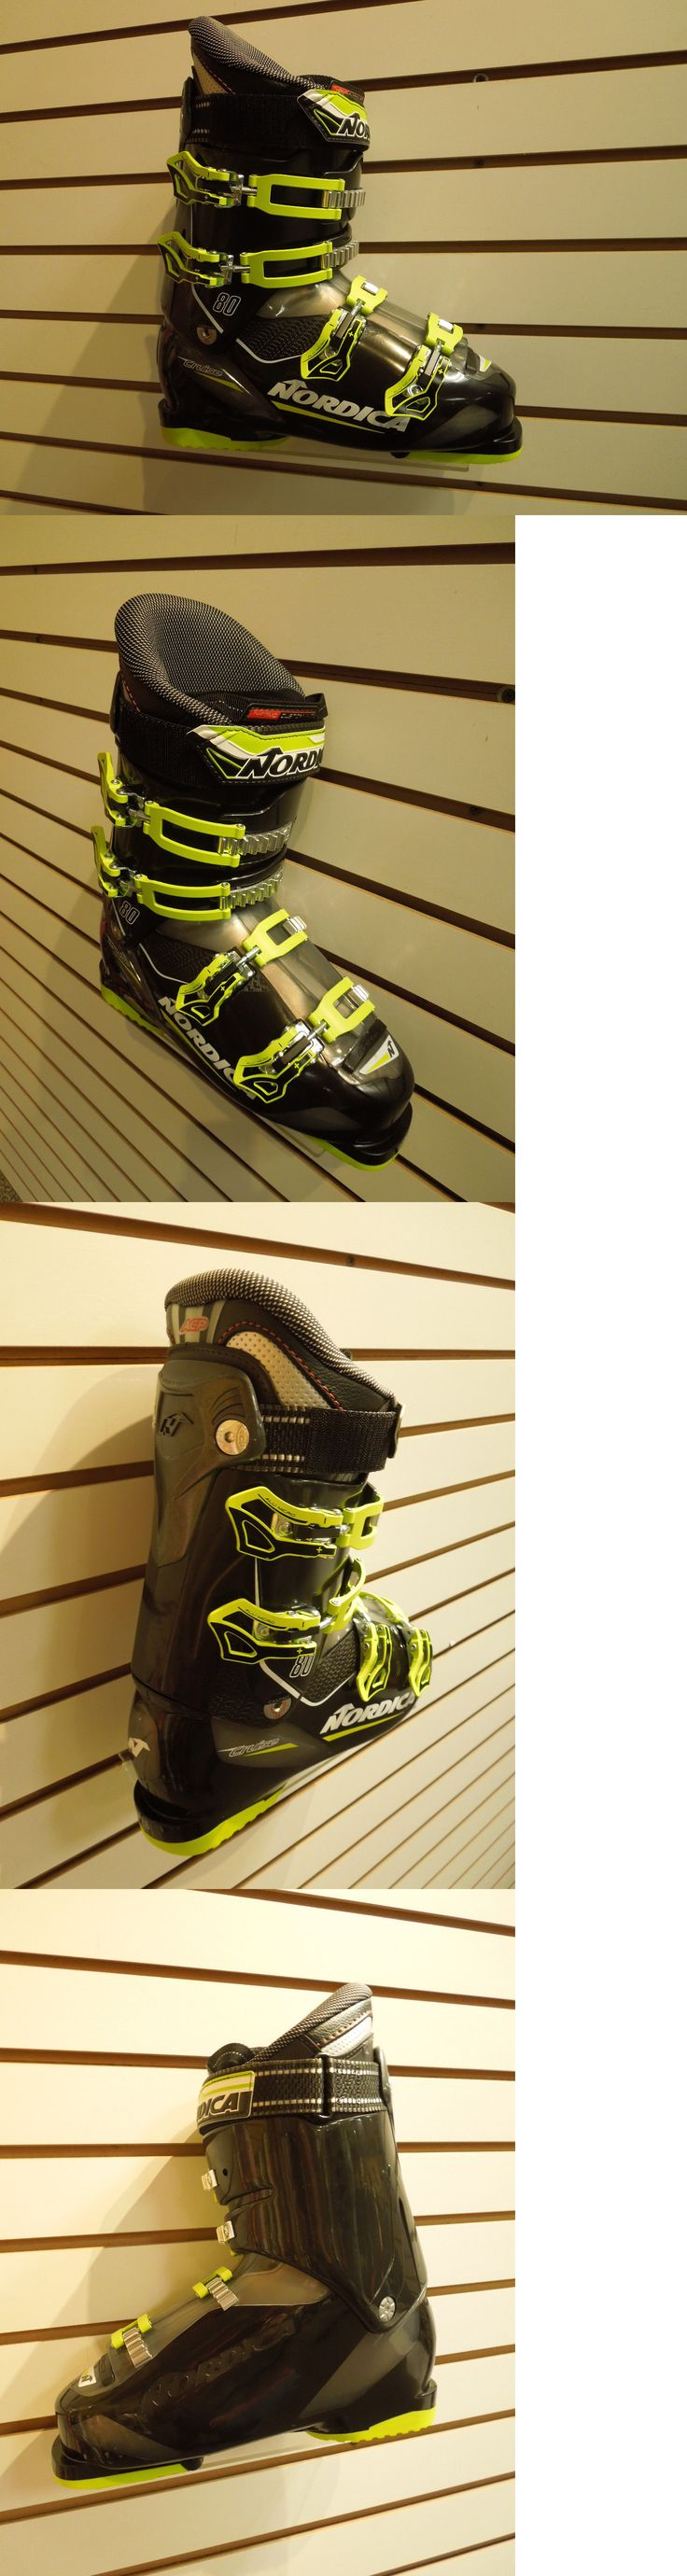 Men 16061: Nordica Cruise 80 Men S Downhill Ski Boots New! -> BUY IT NOW ONLY: $149 on eBay!